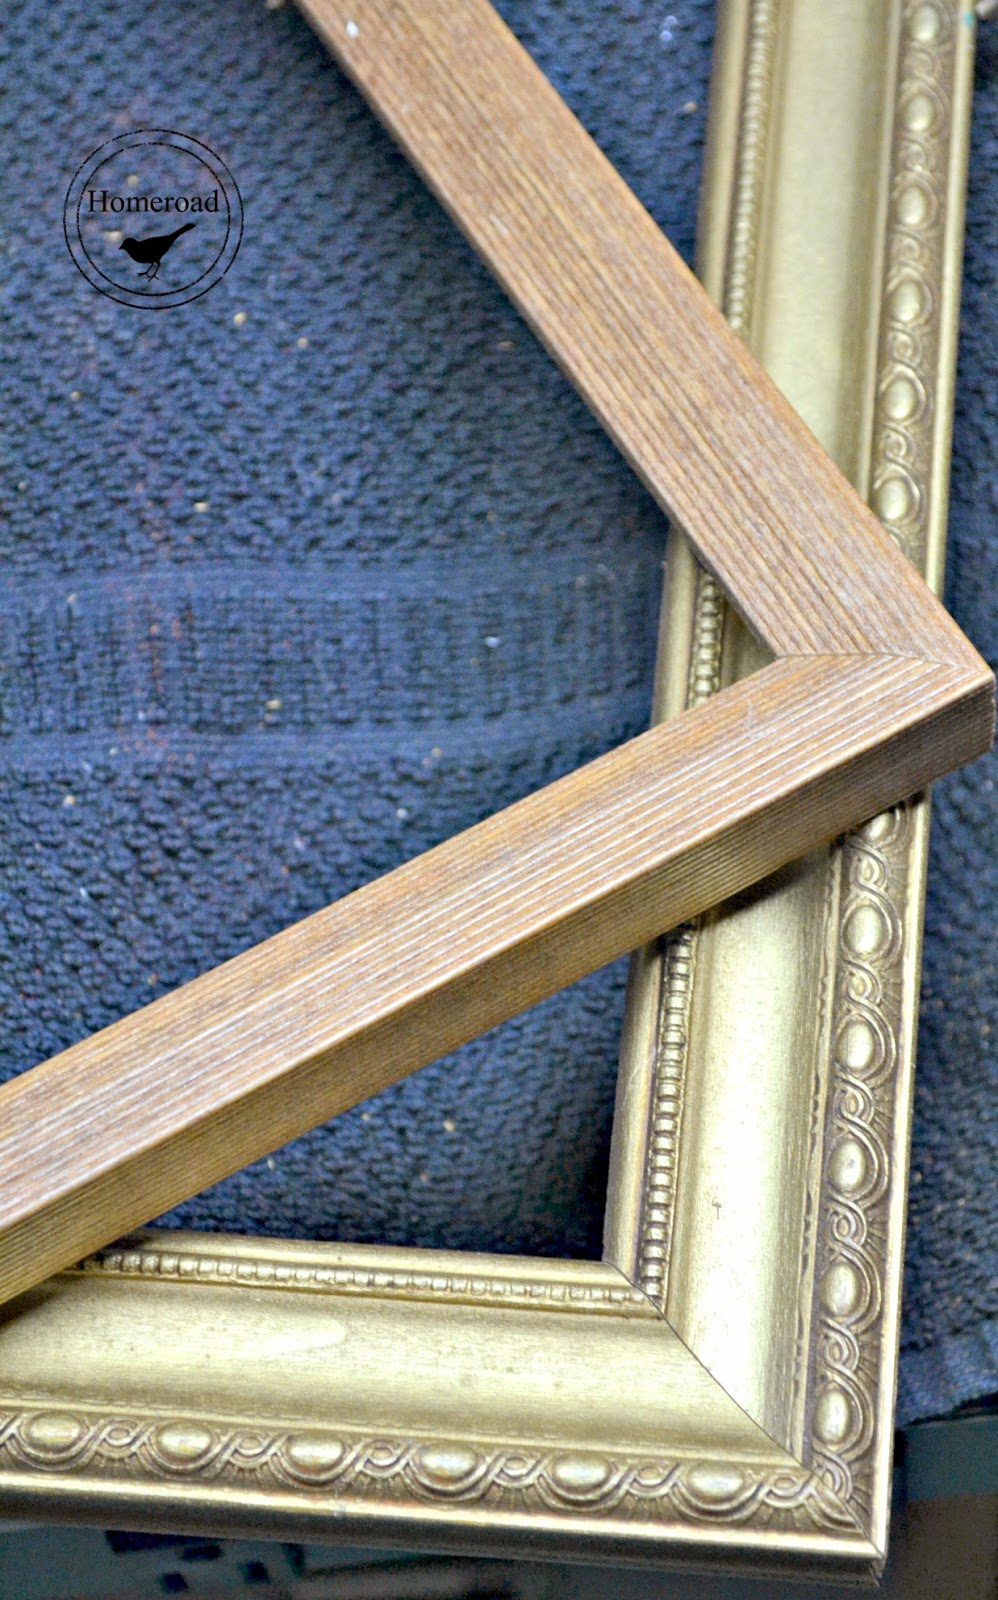 framed chalkboards with a TIP www.homeroad.net